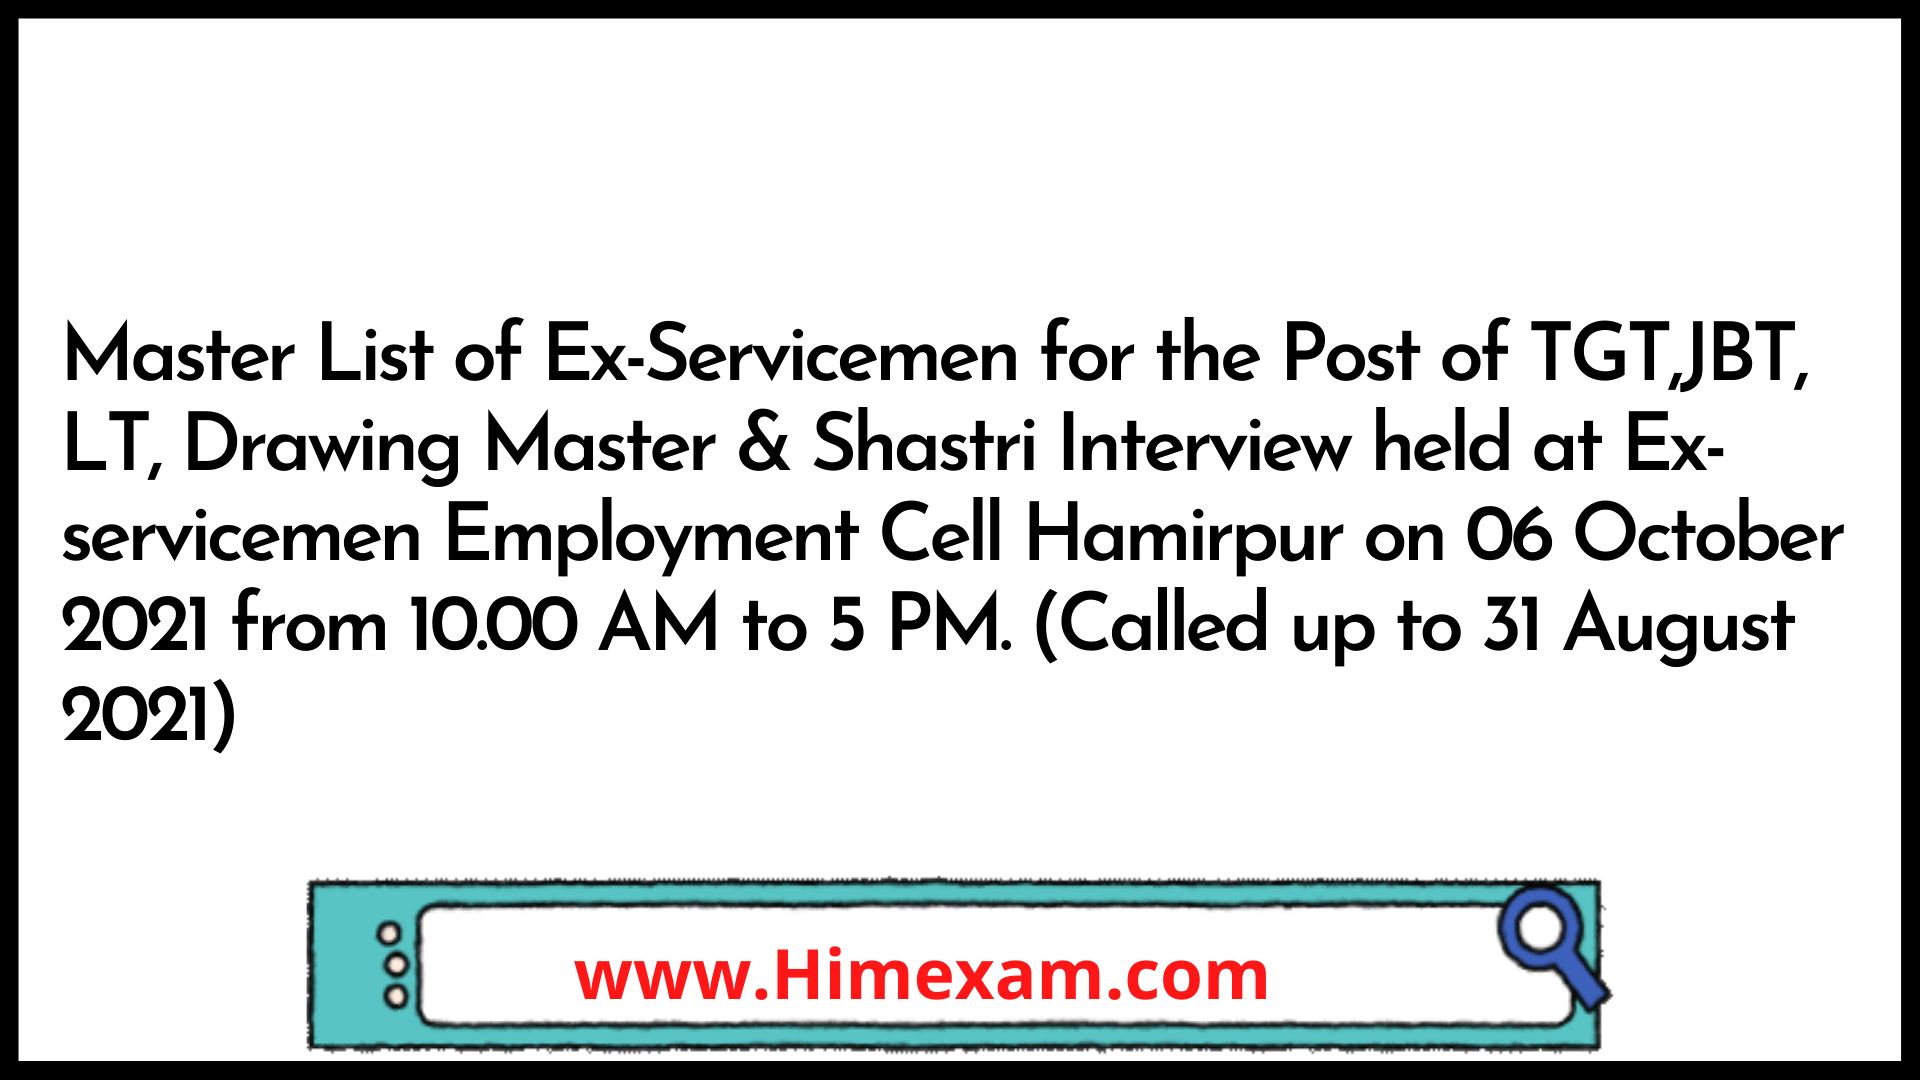 Master List of Ex-Servicemen for the Post of TGT,JBT, LT, Drawing Master & Shastri Interview held at Ex-servicemen Employment Cell Hamirpur on 06 October 2021 from 10.00 AM to 5 PM. (Called up to 31 August 2021)